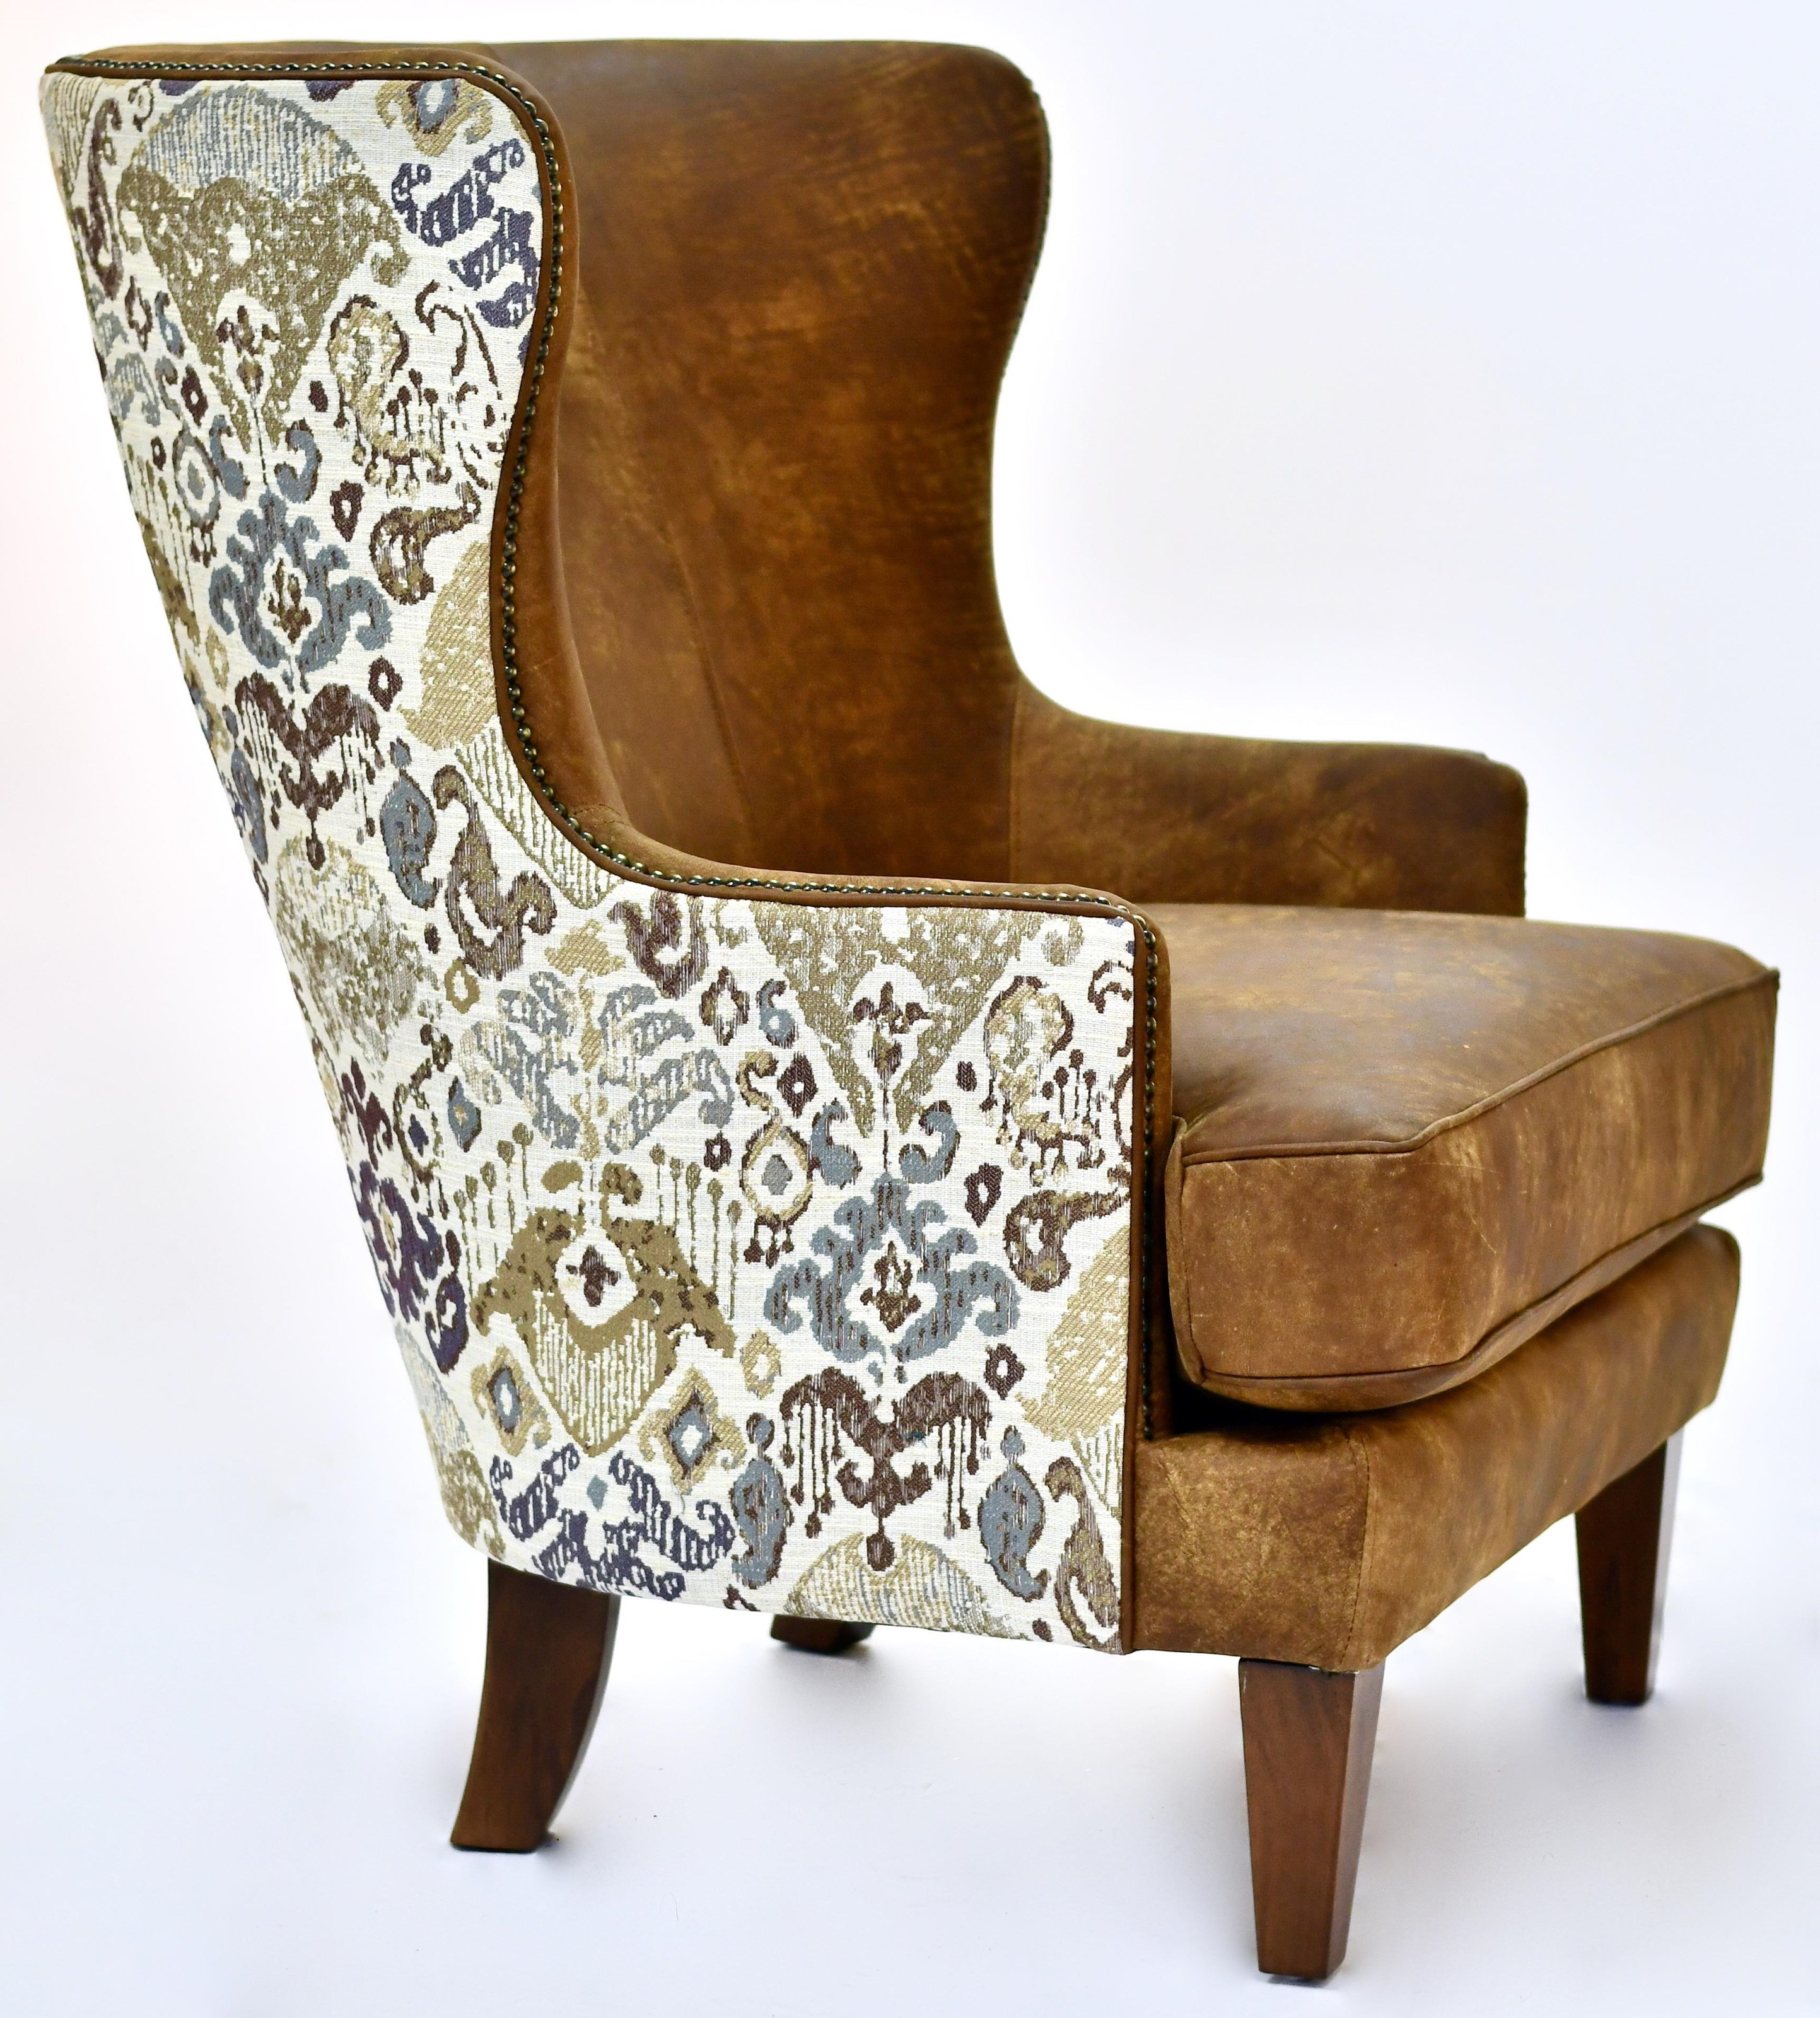 Mia Leather Wing Chair by Taelor Designs at Bennett's Furniture and Mattresses